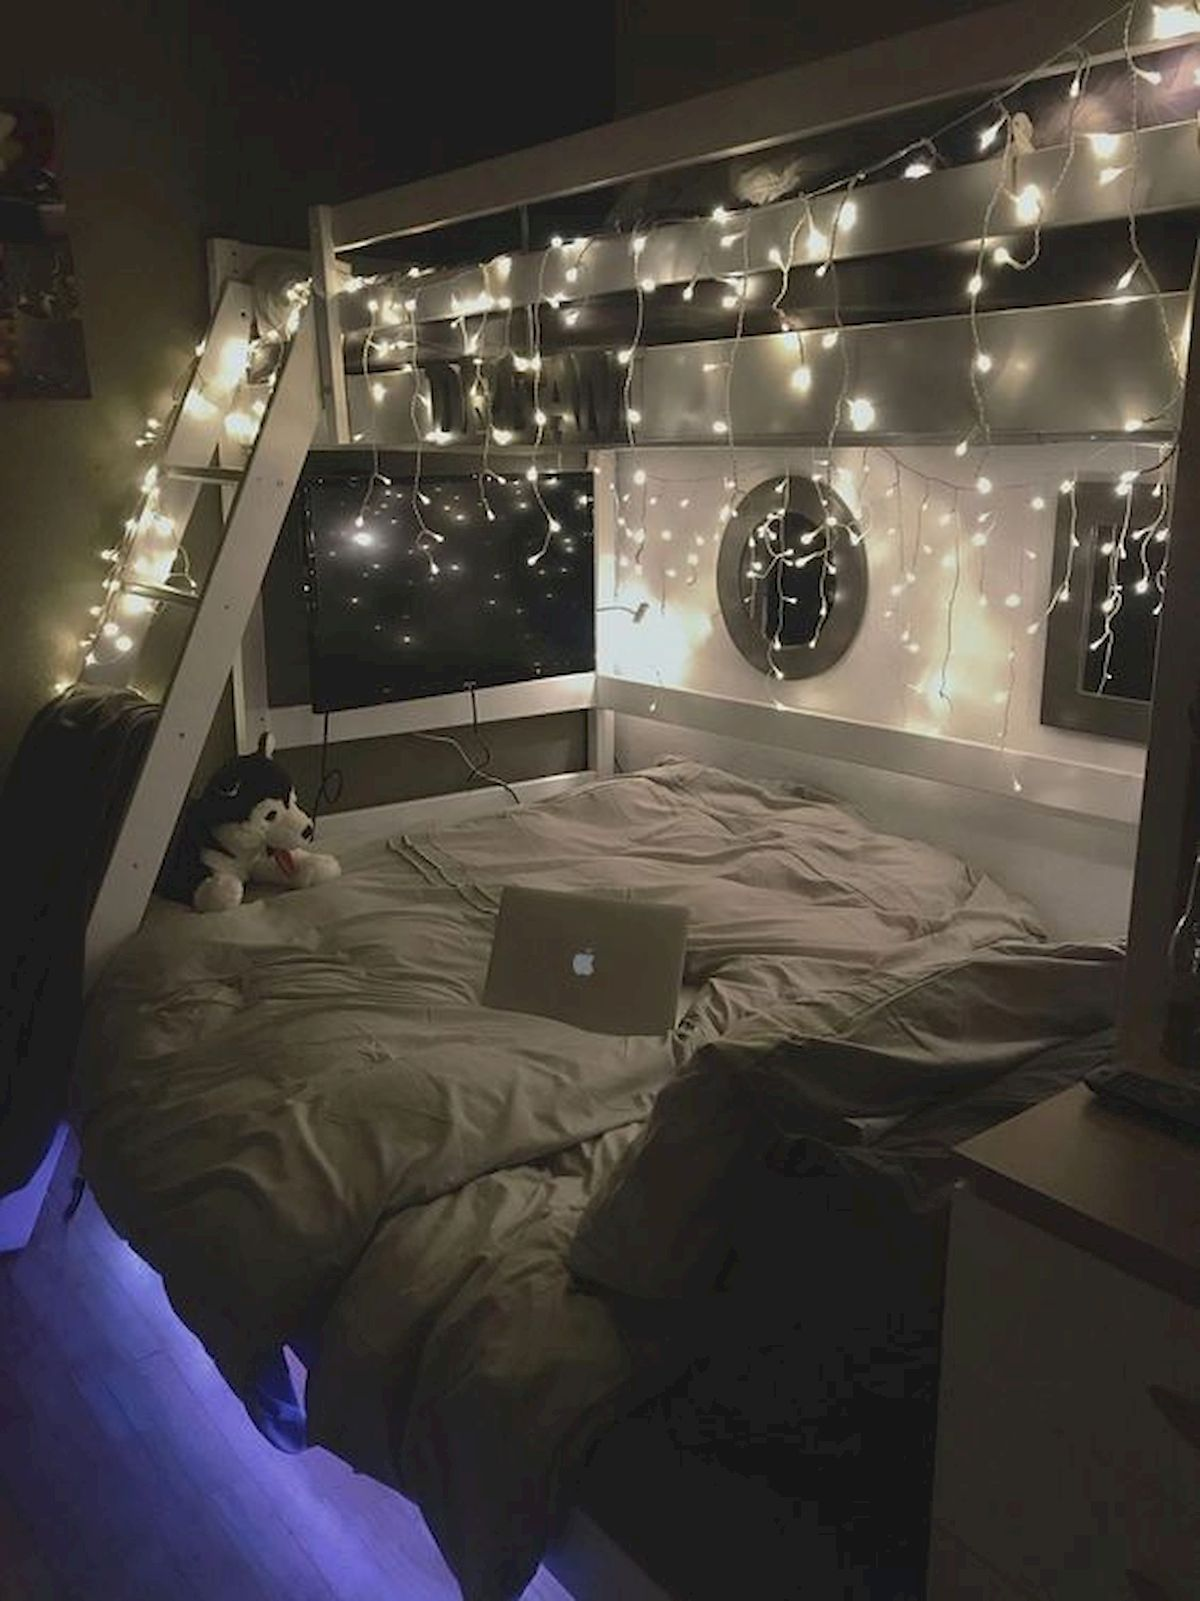 40 Cute Small Bedroom Design and Decor Ideas for Teenage Girl (4)